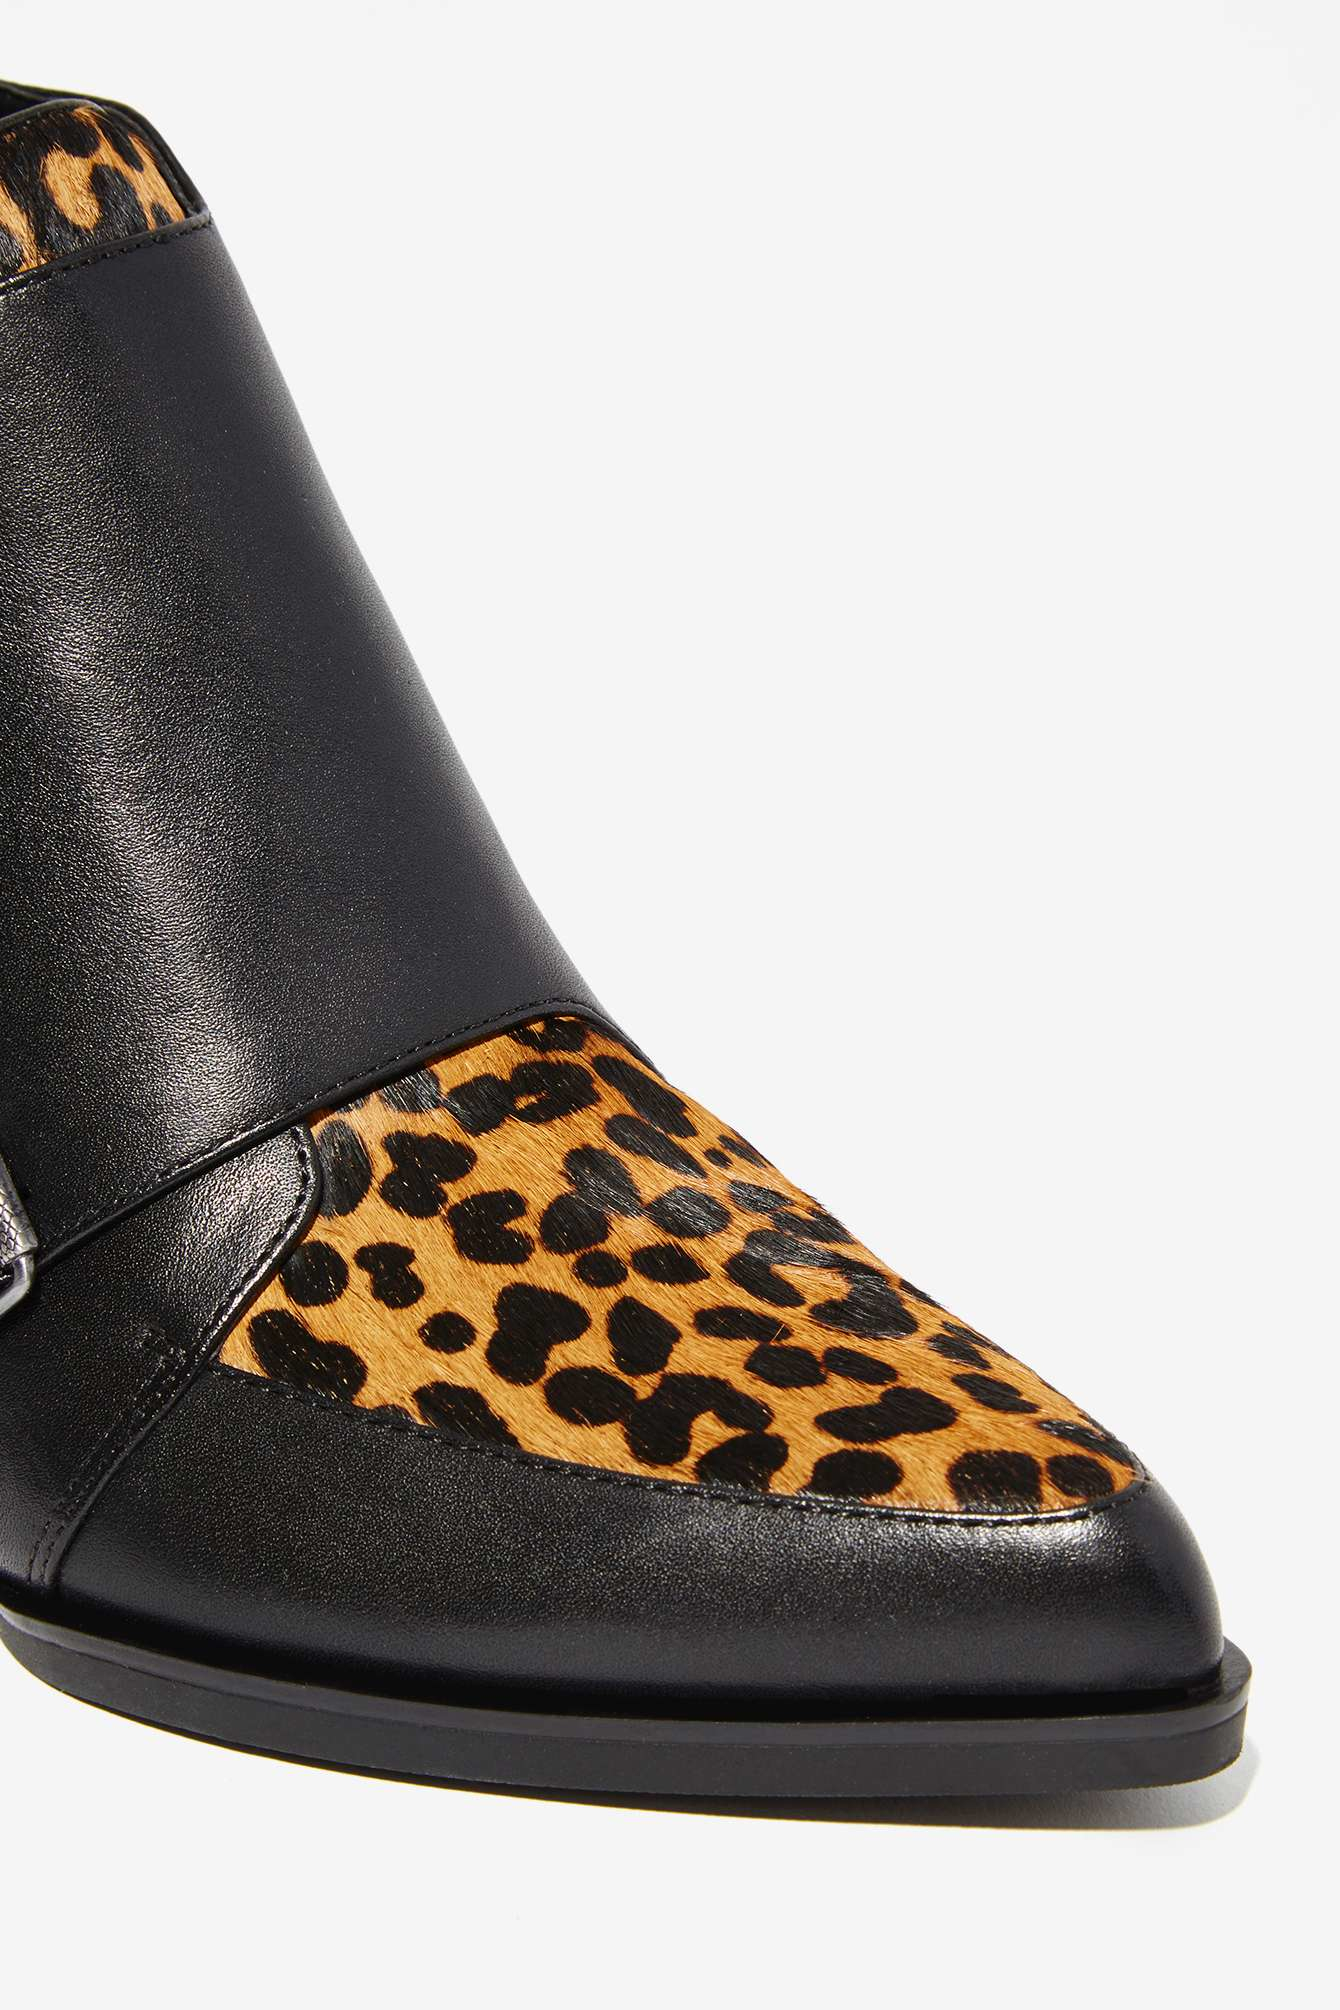 circus by sam edelman leopard booties